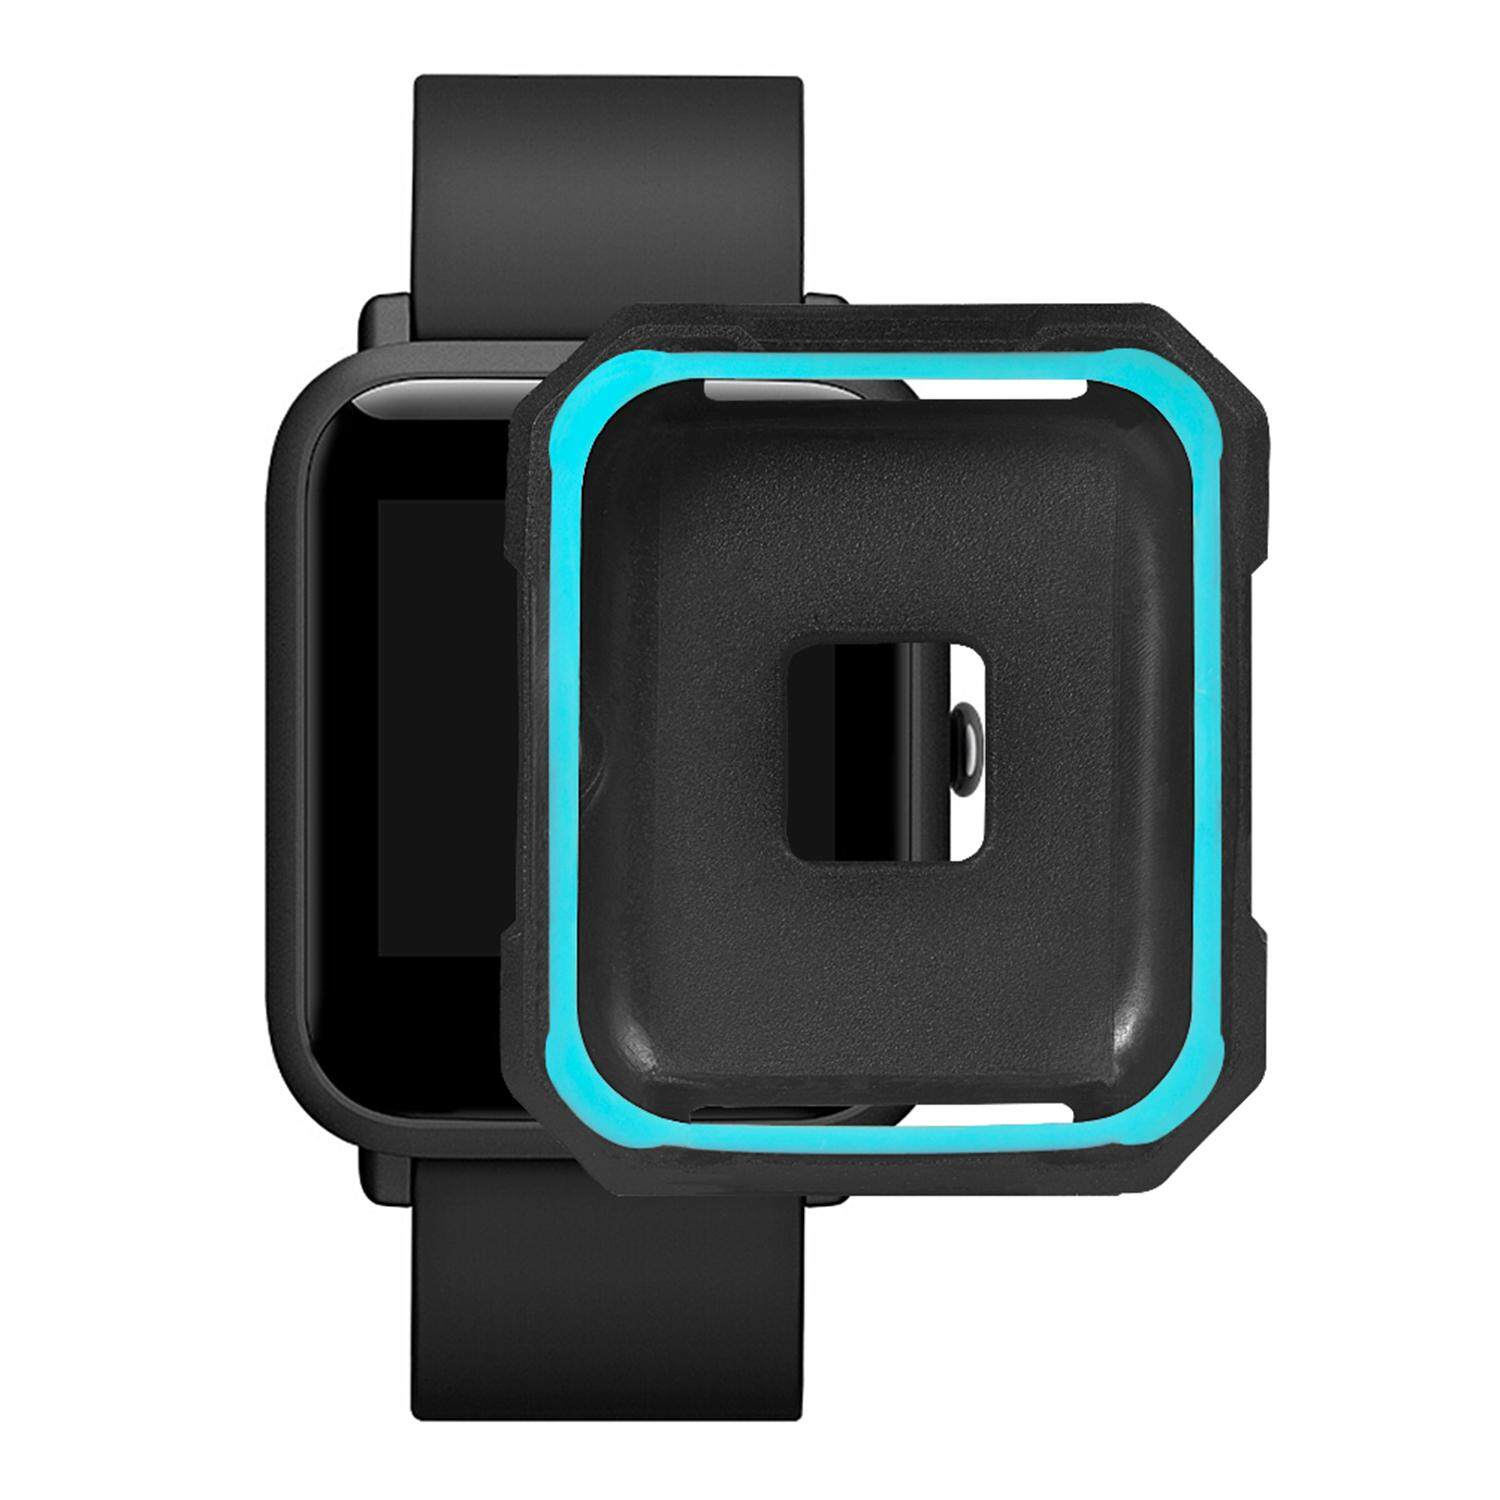 Buy Sell Cheapest Huami Watch Protect Best Quality Product Deals Xiaomi Amazfit Pace 2 Stratos Cover Bumper Case Shell Frame Protector Anti Cracking Soft Tpu Full Protective Compatible With